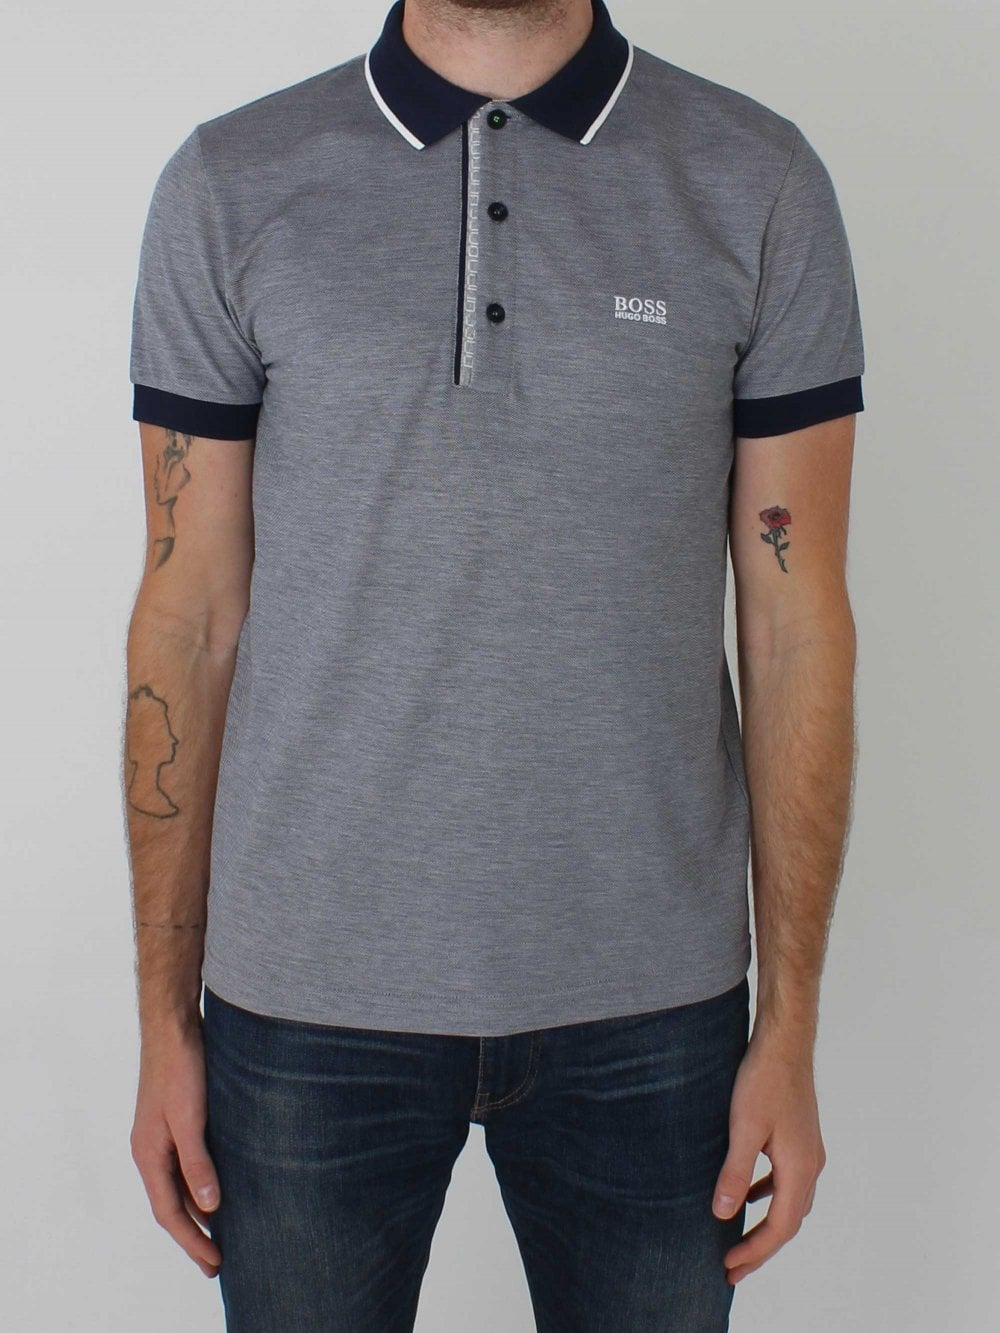 78ed46c9 Hugo Boss Paule 4 Polo in Navy | Northern Threads